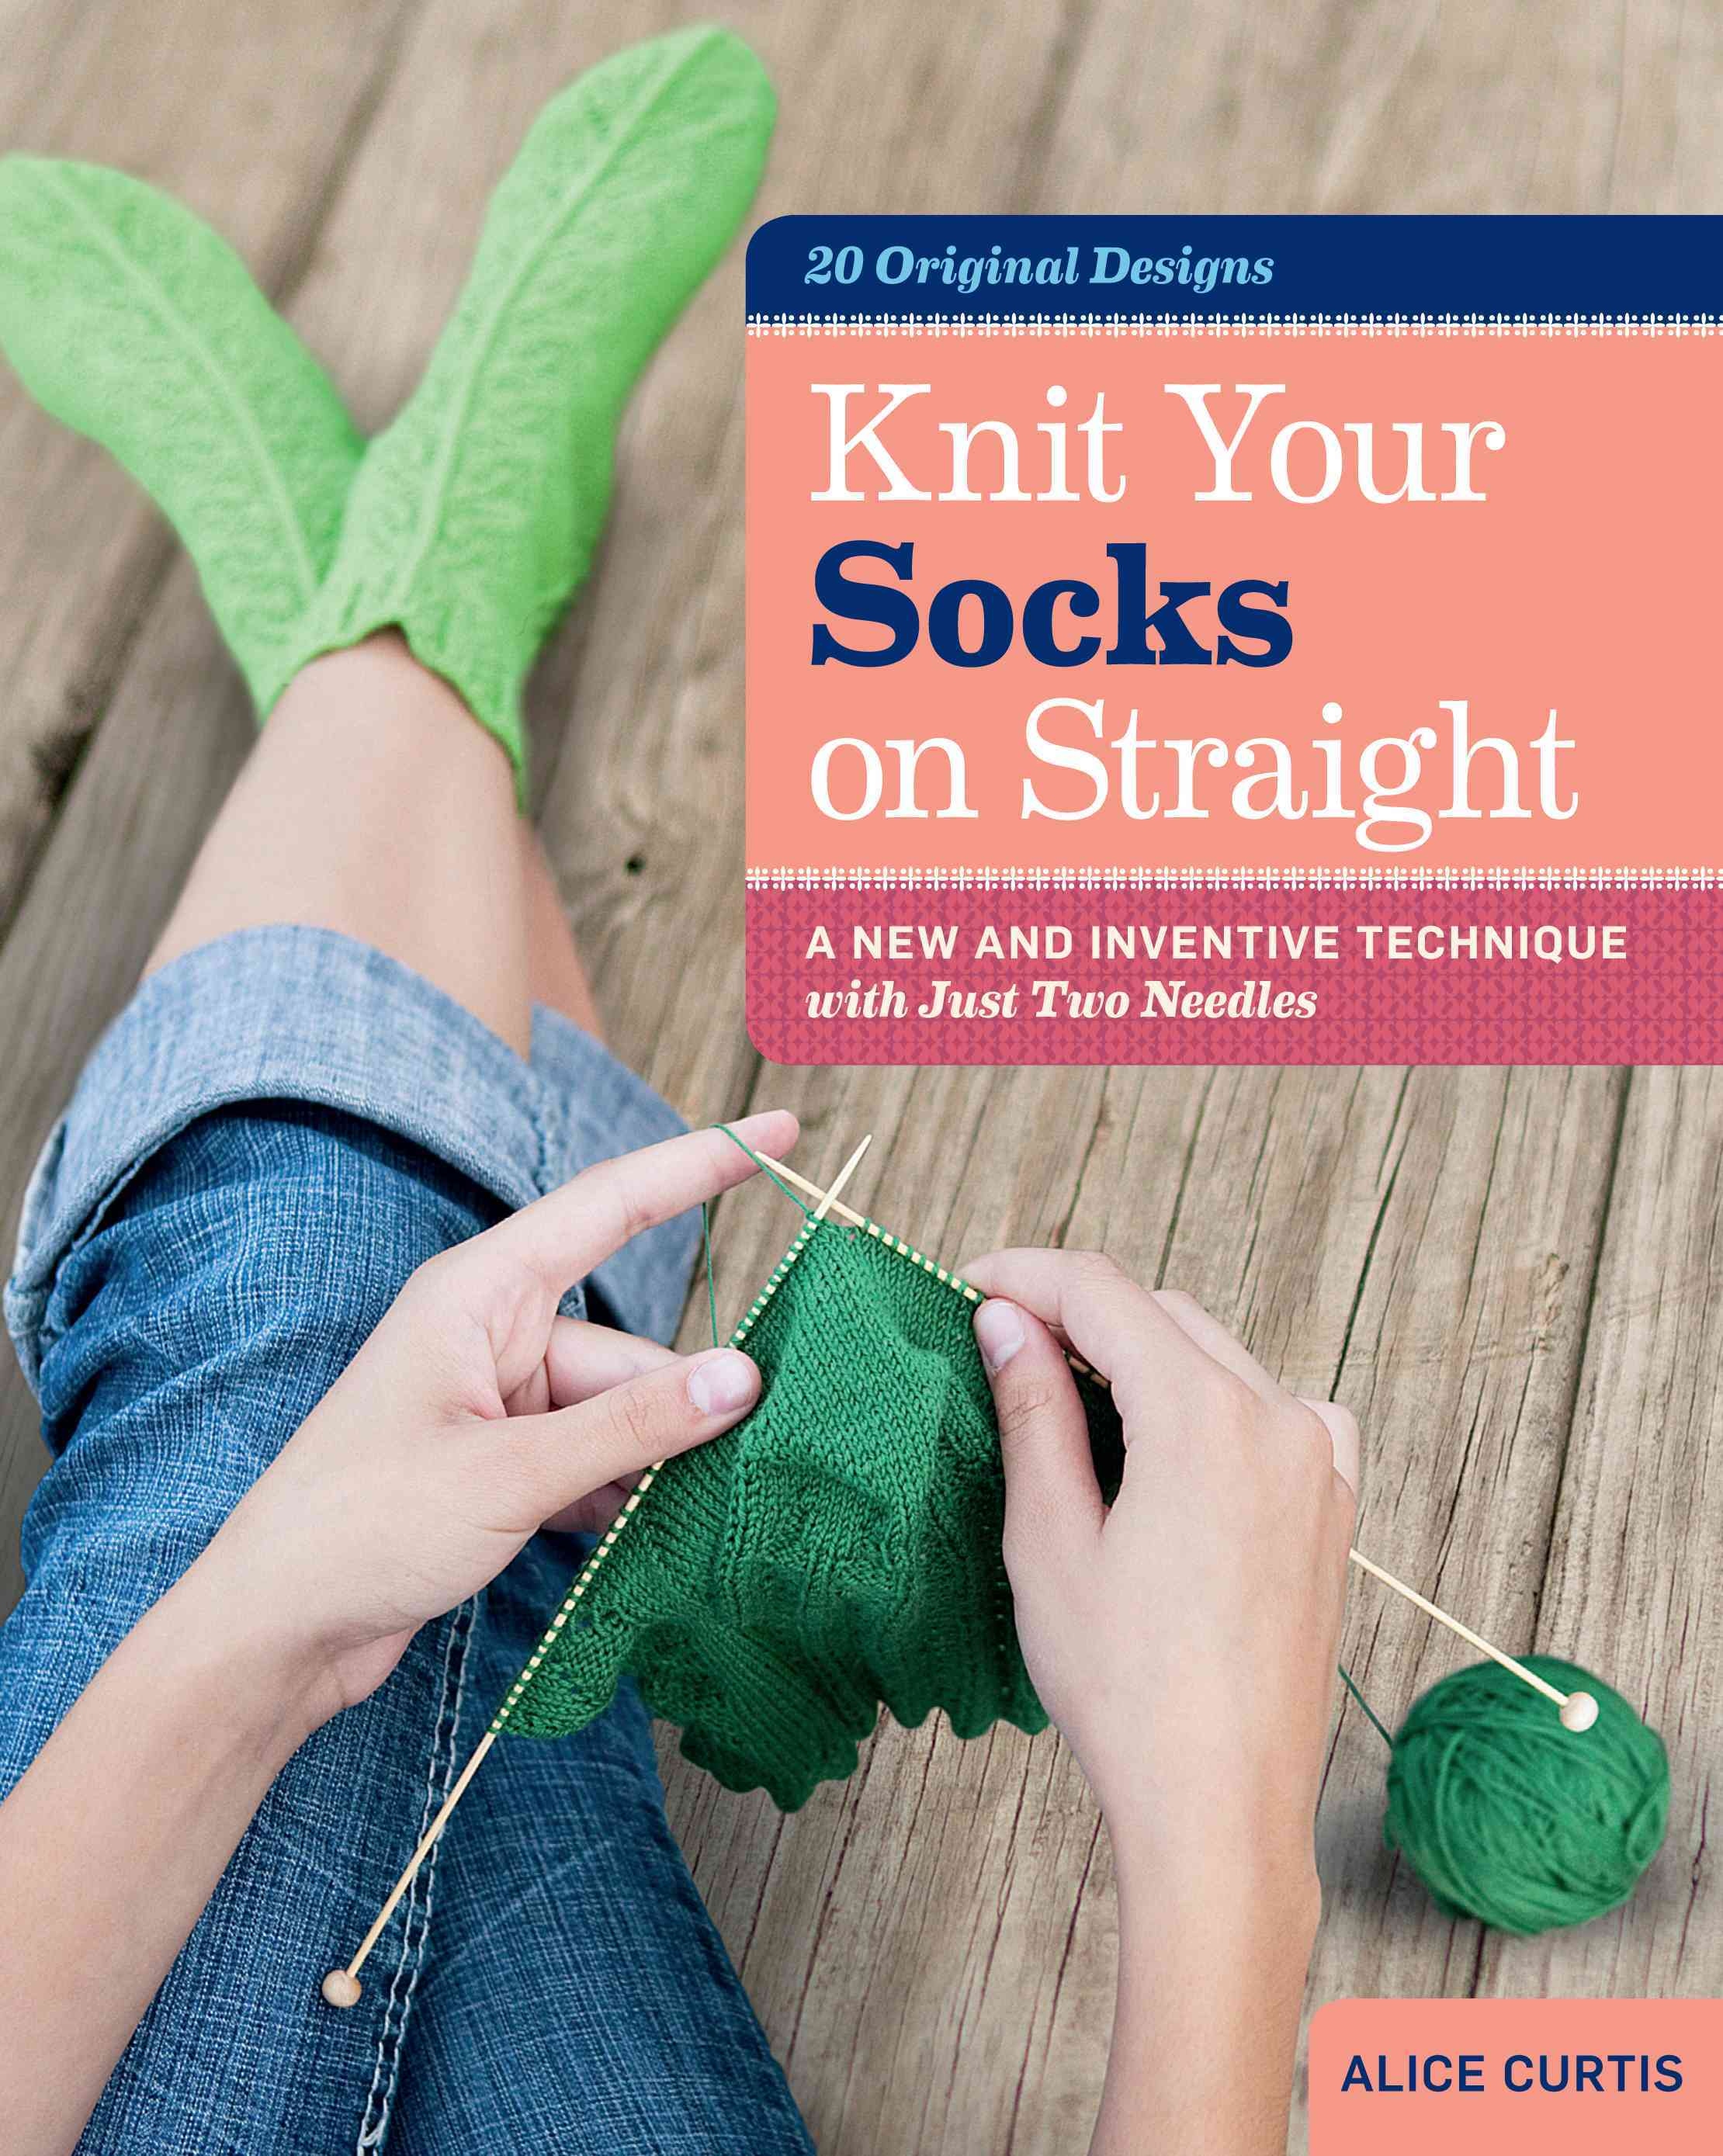 Knit Your Socks on Straight: A New and Inventive Technique With Just Two Needles (Hardcover)